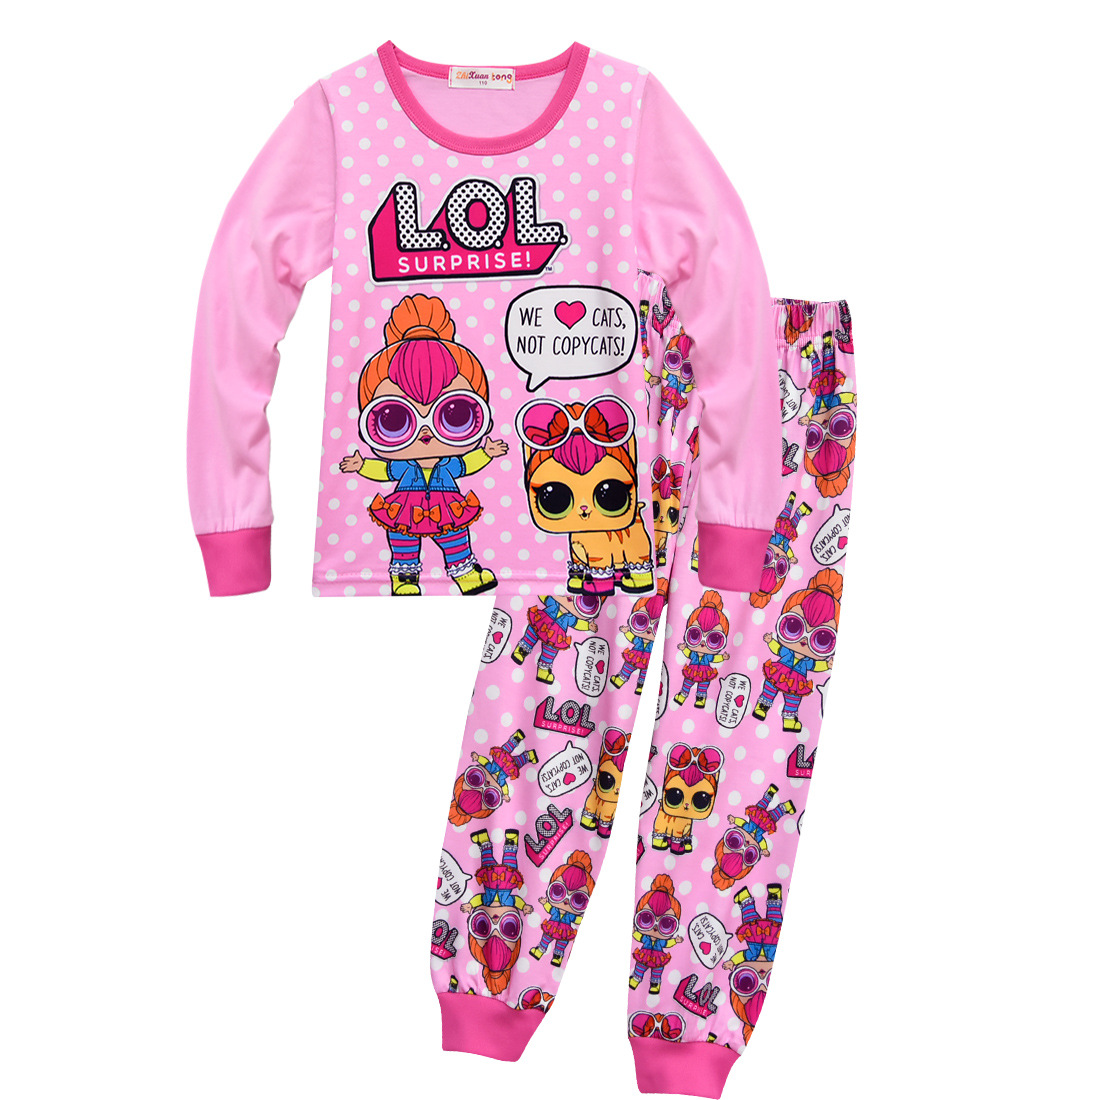 New Autumn Toddler Kids Pajamas Set Children Sleepwear Suit Lol Dolls for Girls Baby Girl Casual Cotton Nightwear Clothes Infant new 2018 children cloth 3d print autumn sleepwear rn 9 girls baby cotton girl sleepwear dress kids party princess nightgown